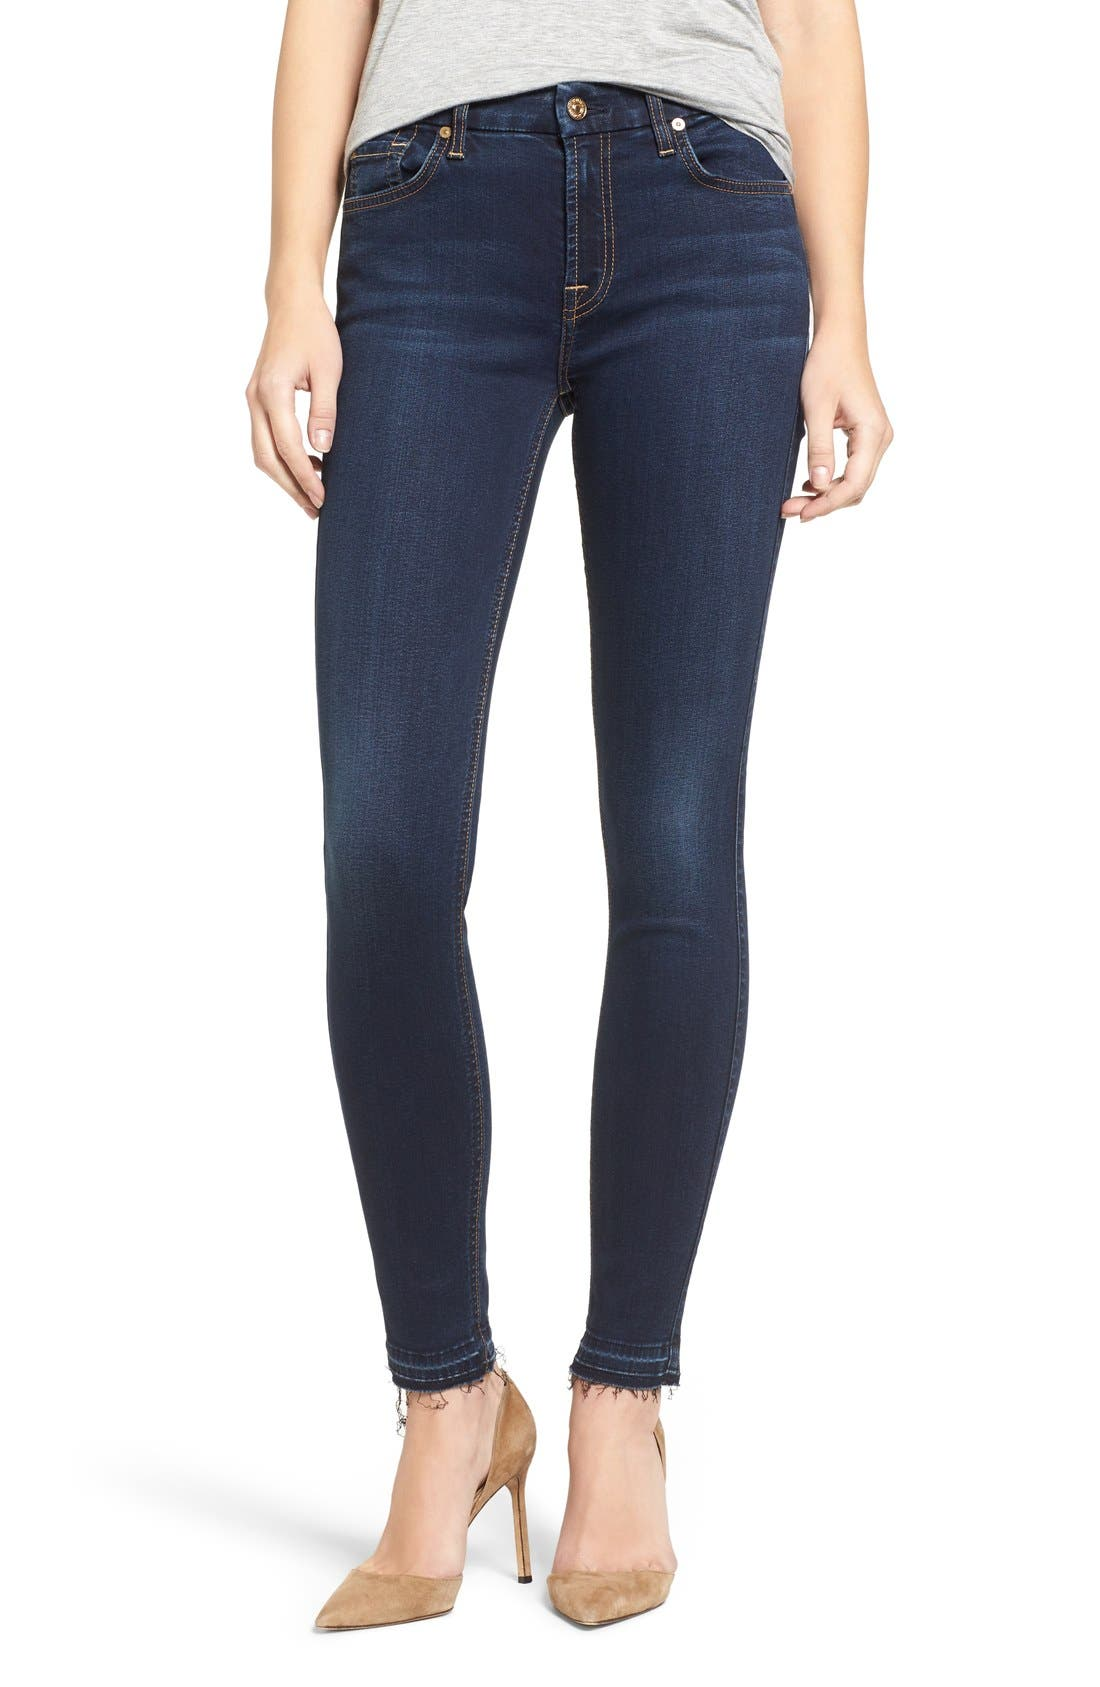 b(air) Ankle Skinny Jeans,                         Main,                         color, 400